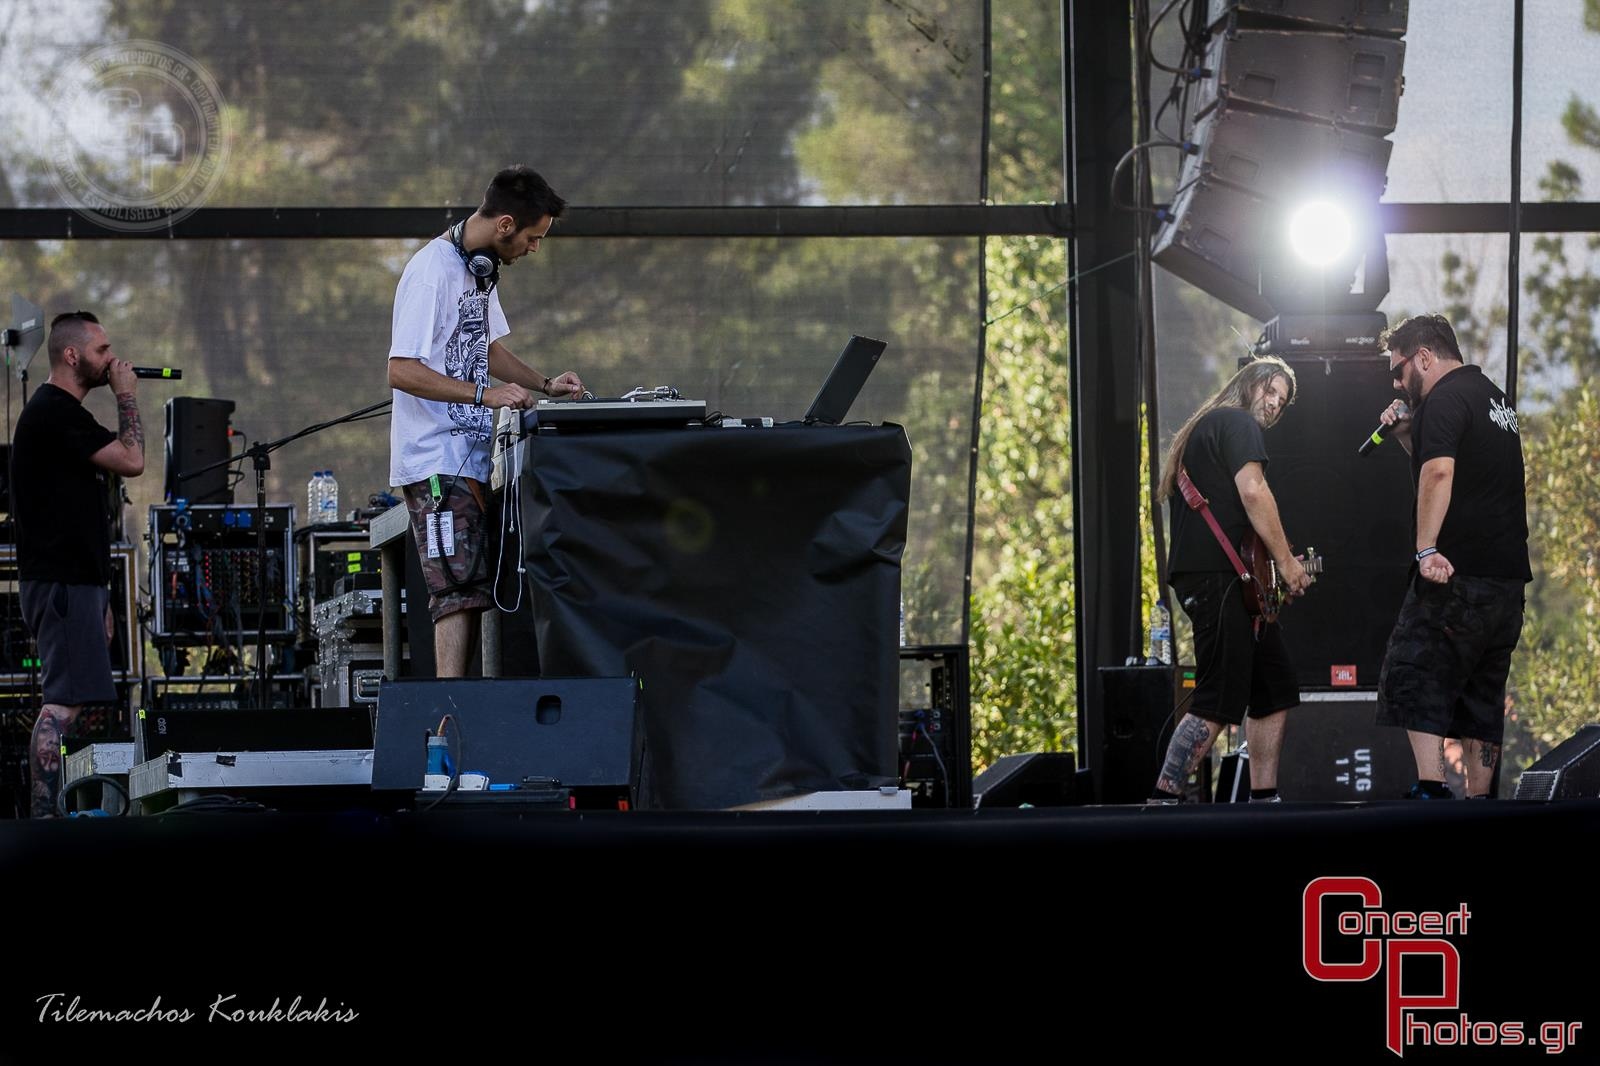 Rockwave 2014-Rockwave 2014 - Day 1 photographer:  - Rockwave-2014-41